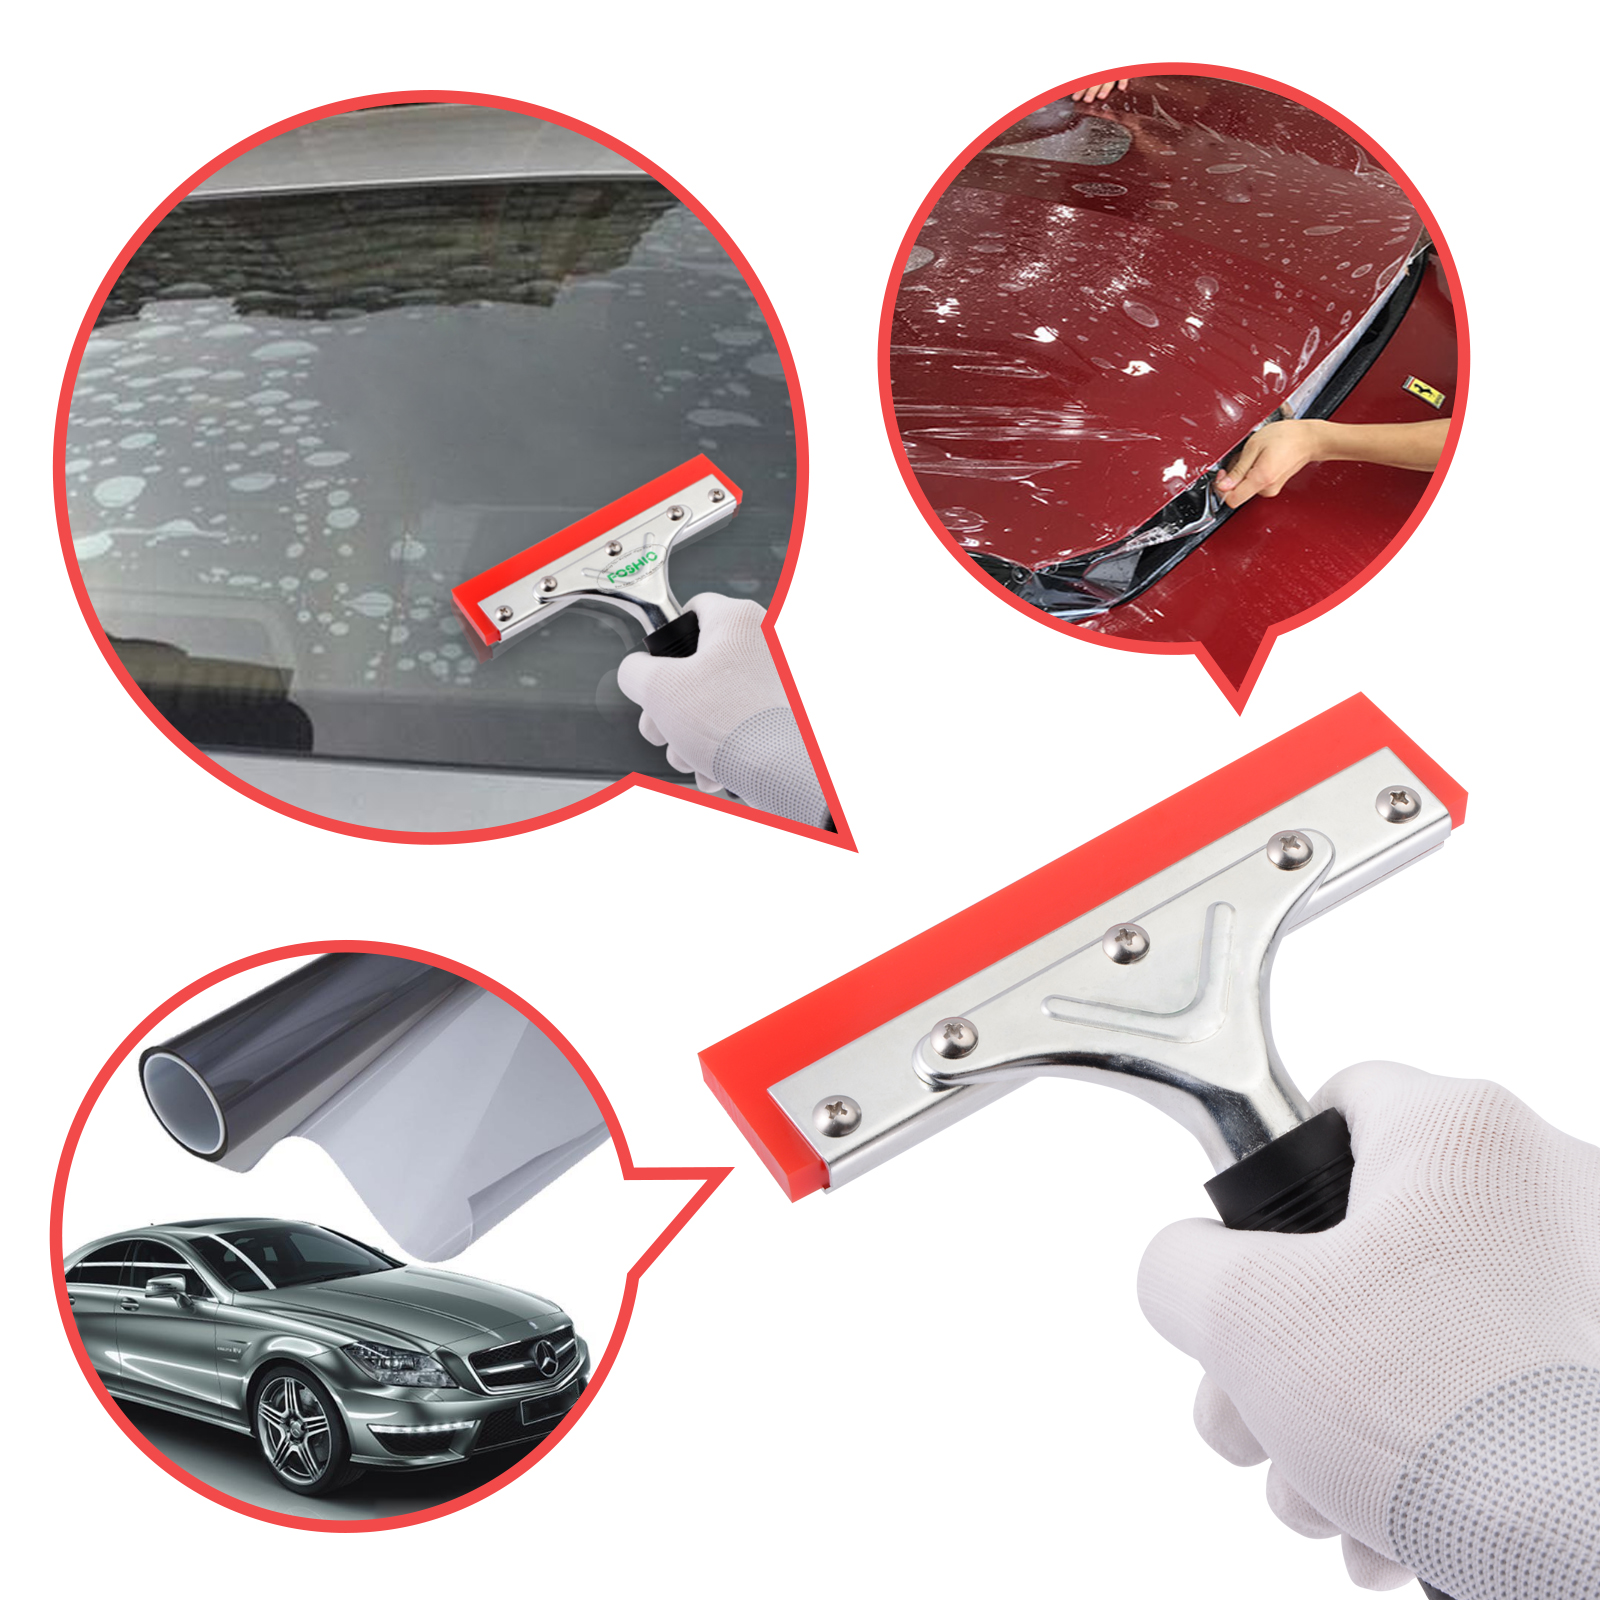 Foshio Car Window Tint Squeegee Rubber Blade With Handle Vinyl Car Wrap Tool Glass Water Wiper Cleaning Tool Snow Ice Scraper